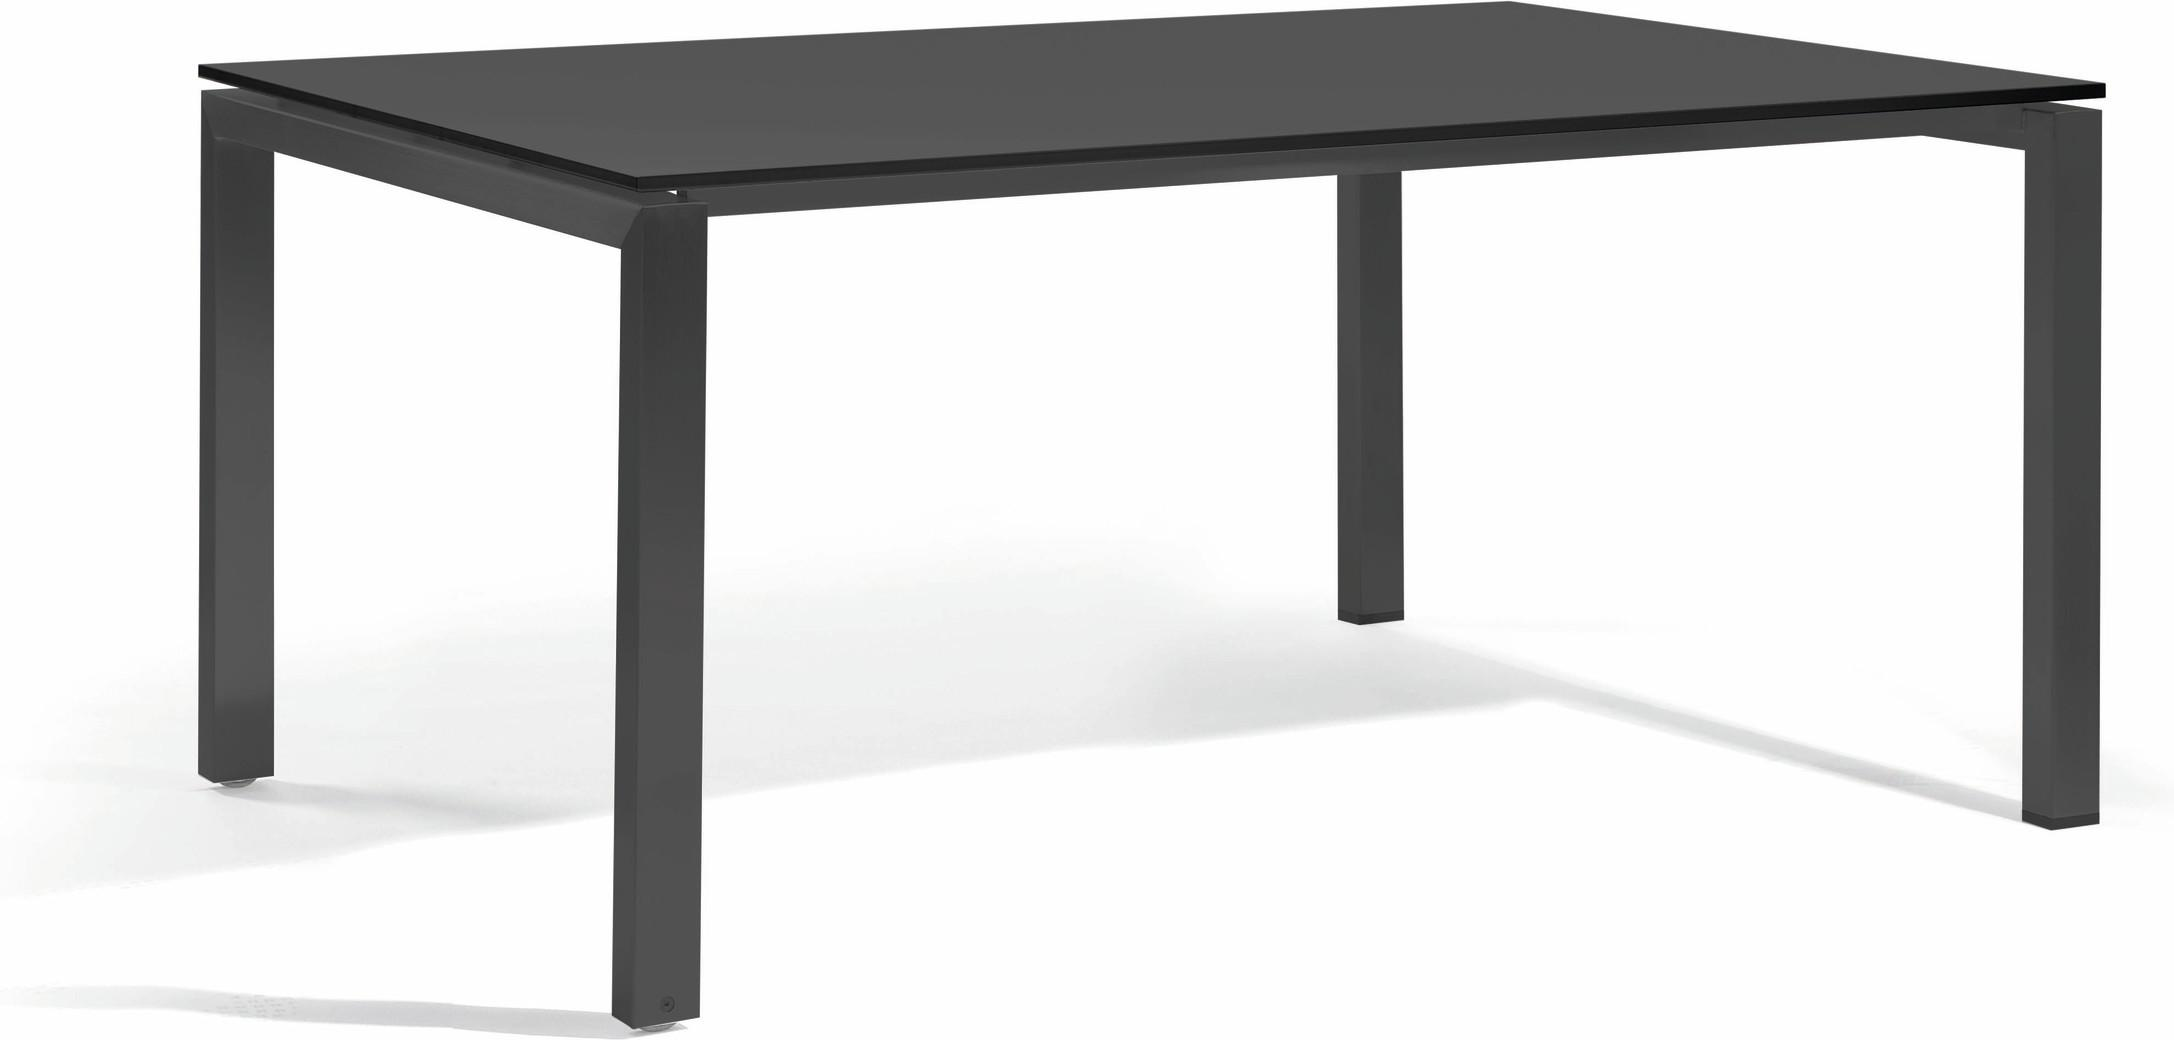 Trento Dining table - glass black GLB 150